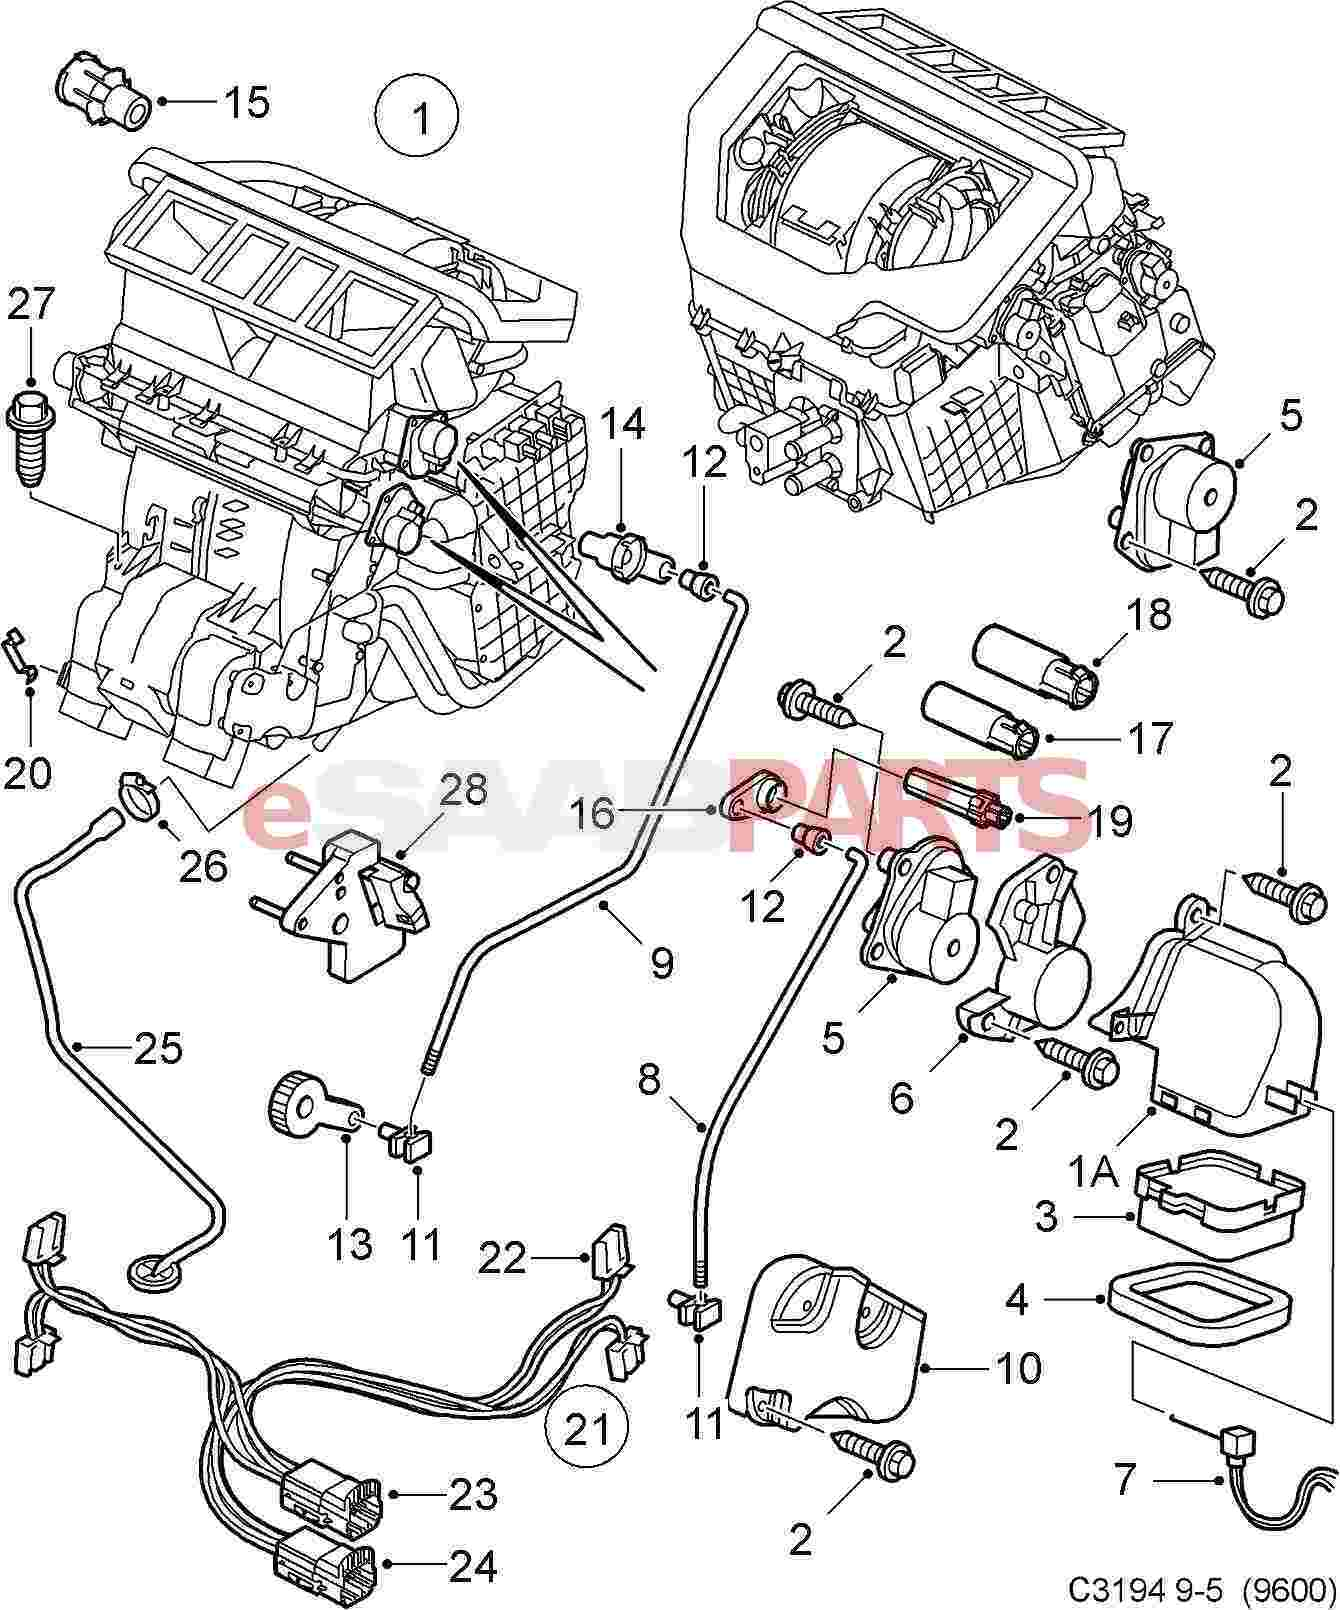 mazda protege daytime running light drl wiring diagram